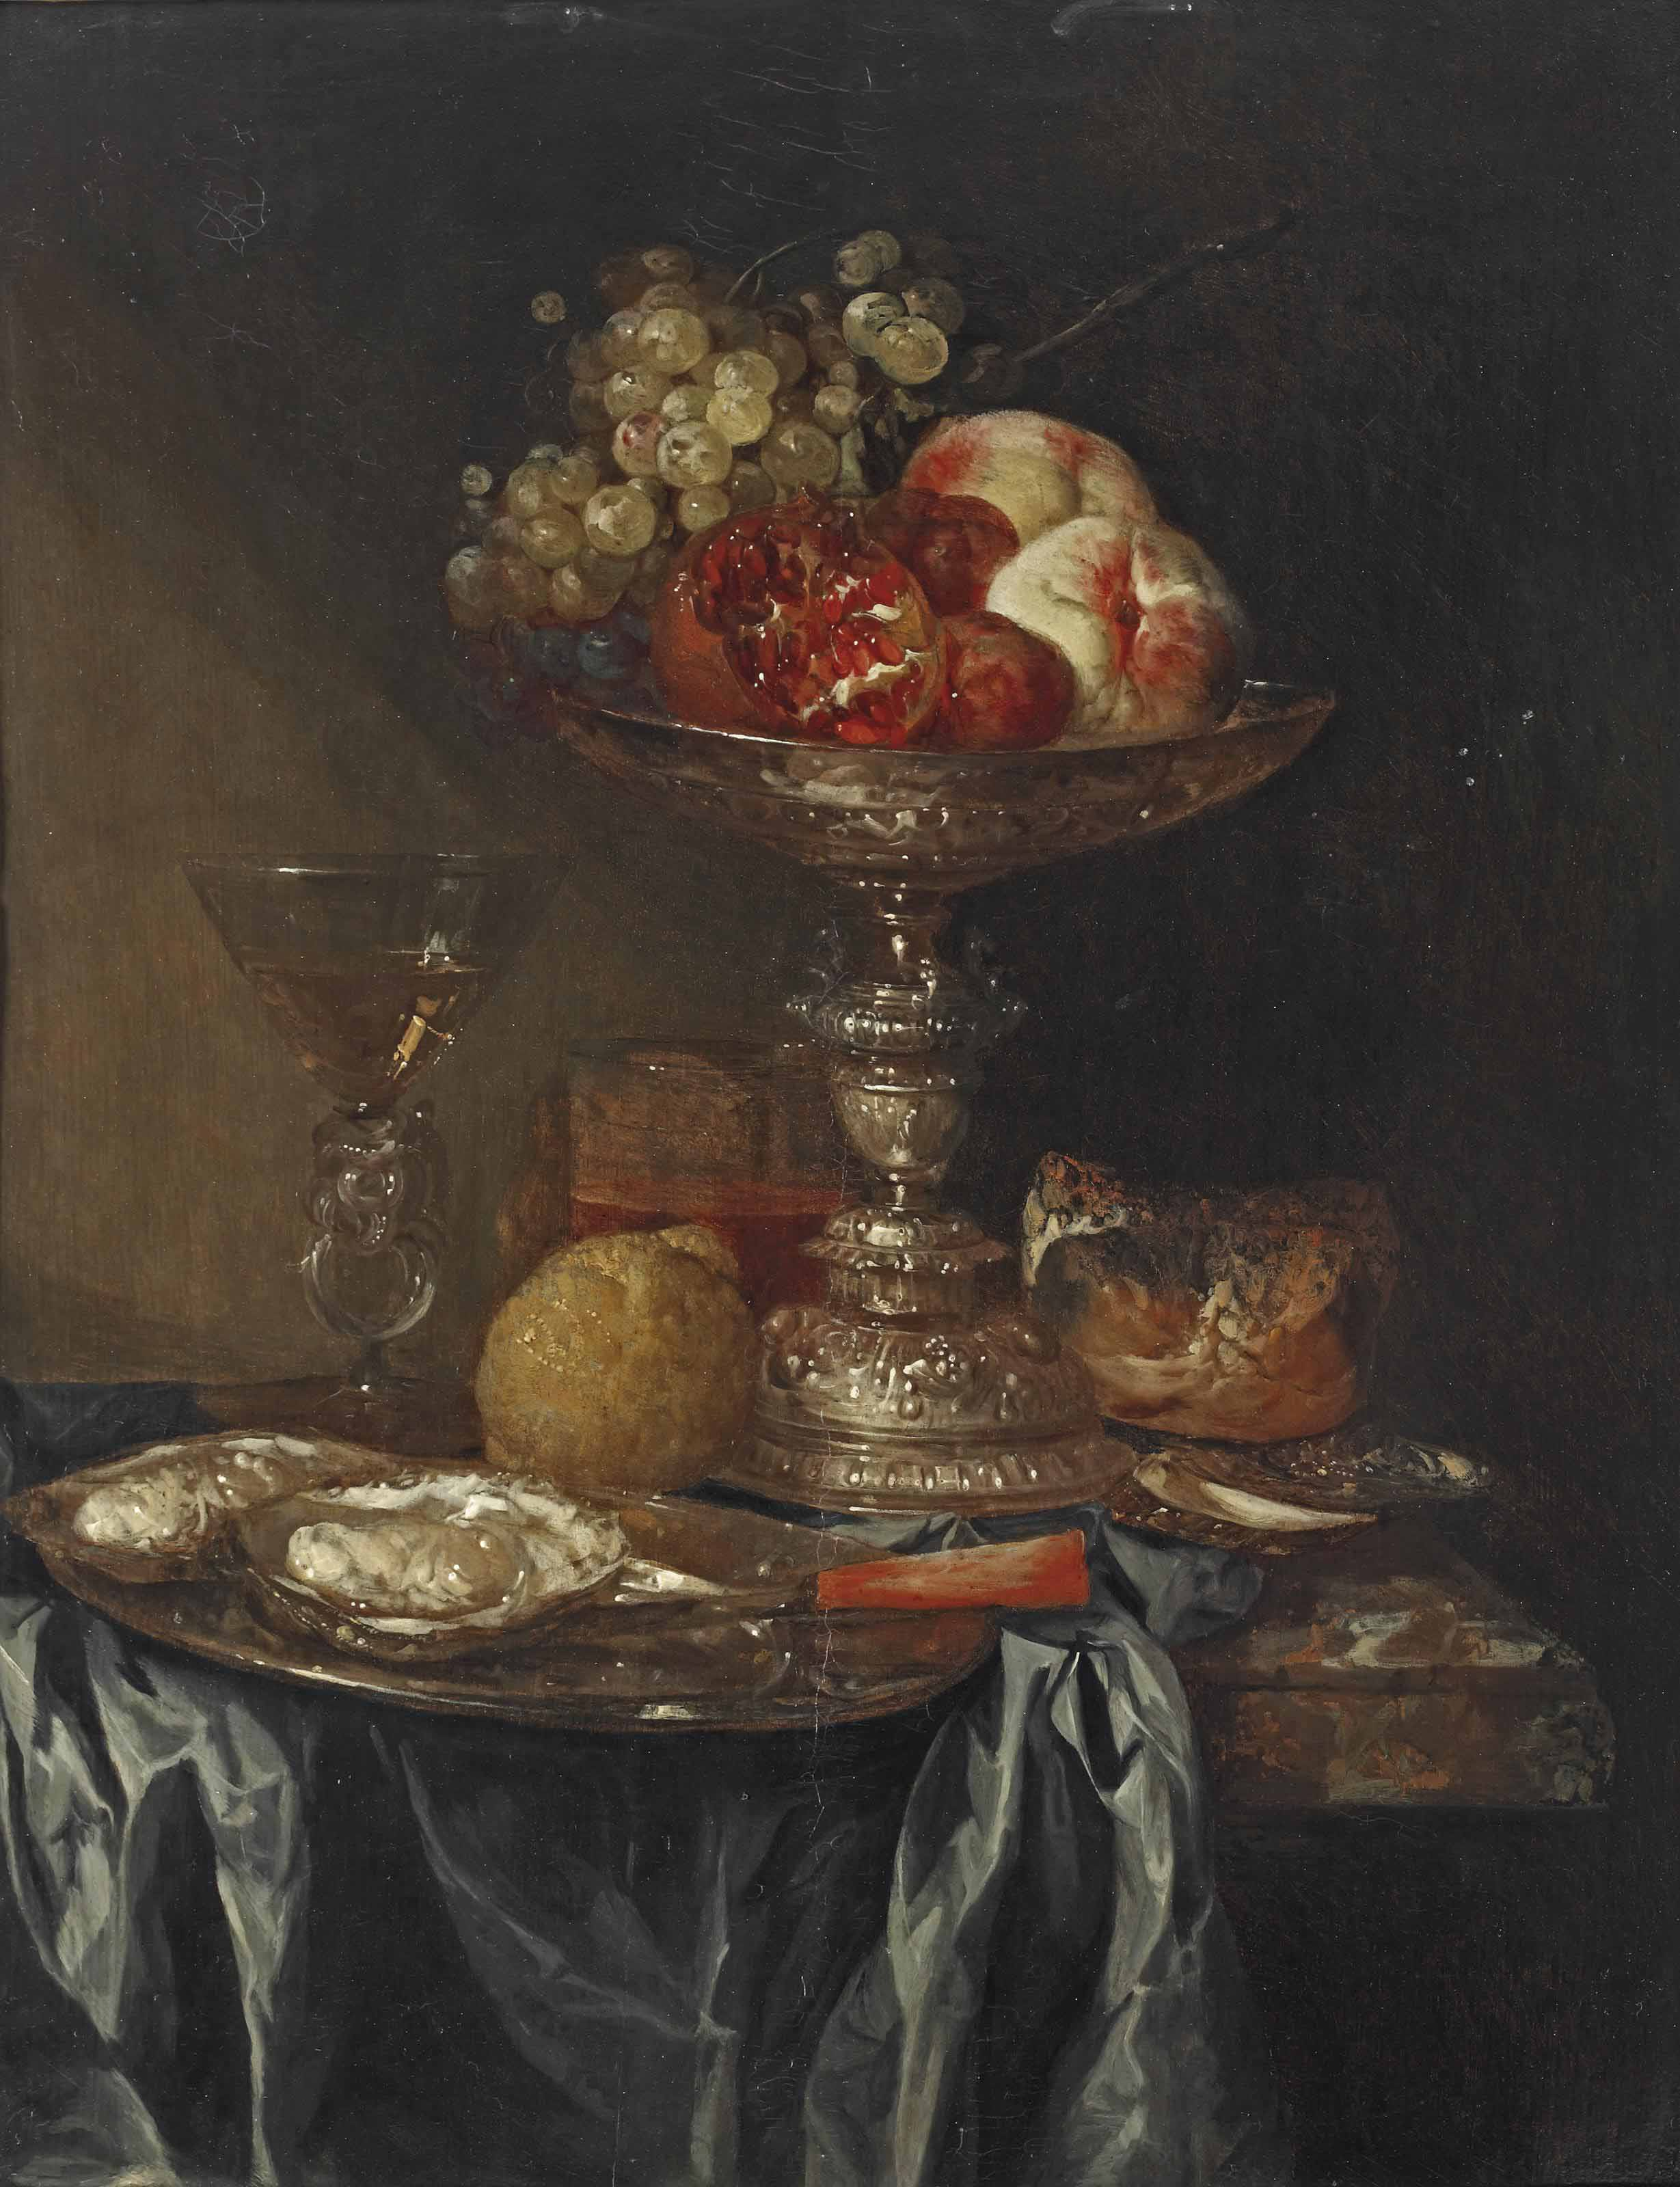 Grapes, pomegranates and peaches in a silver tazza, oysters on a pewter plate, a façon-de-venice glass with white wine, a glass of beer, a lemon and a bread roll, on a partially draped marble table